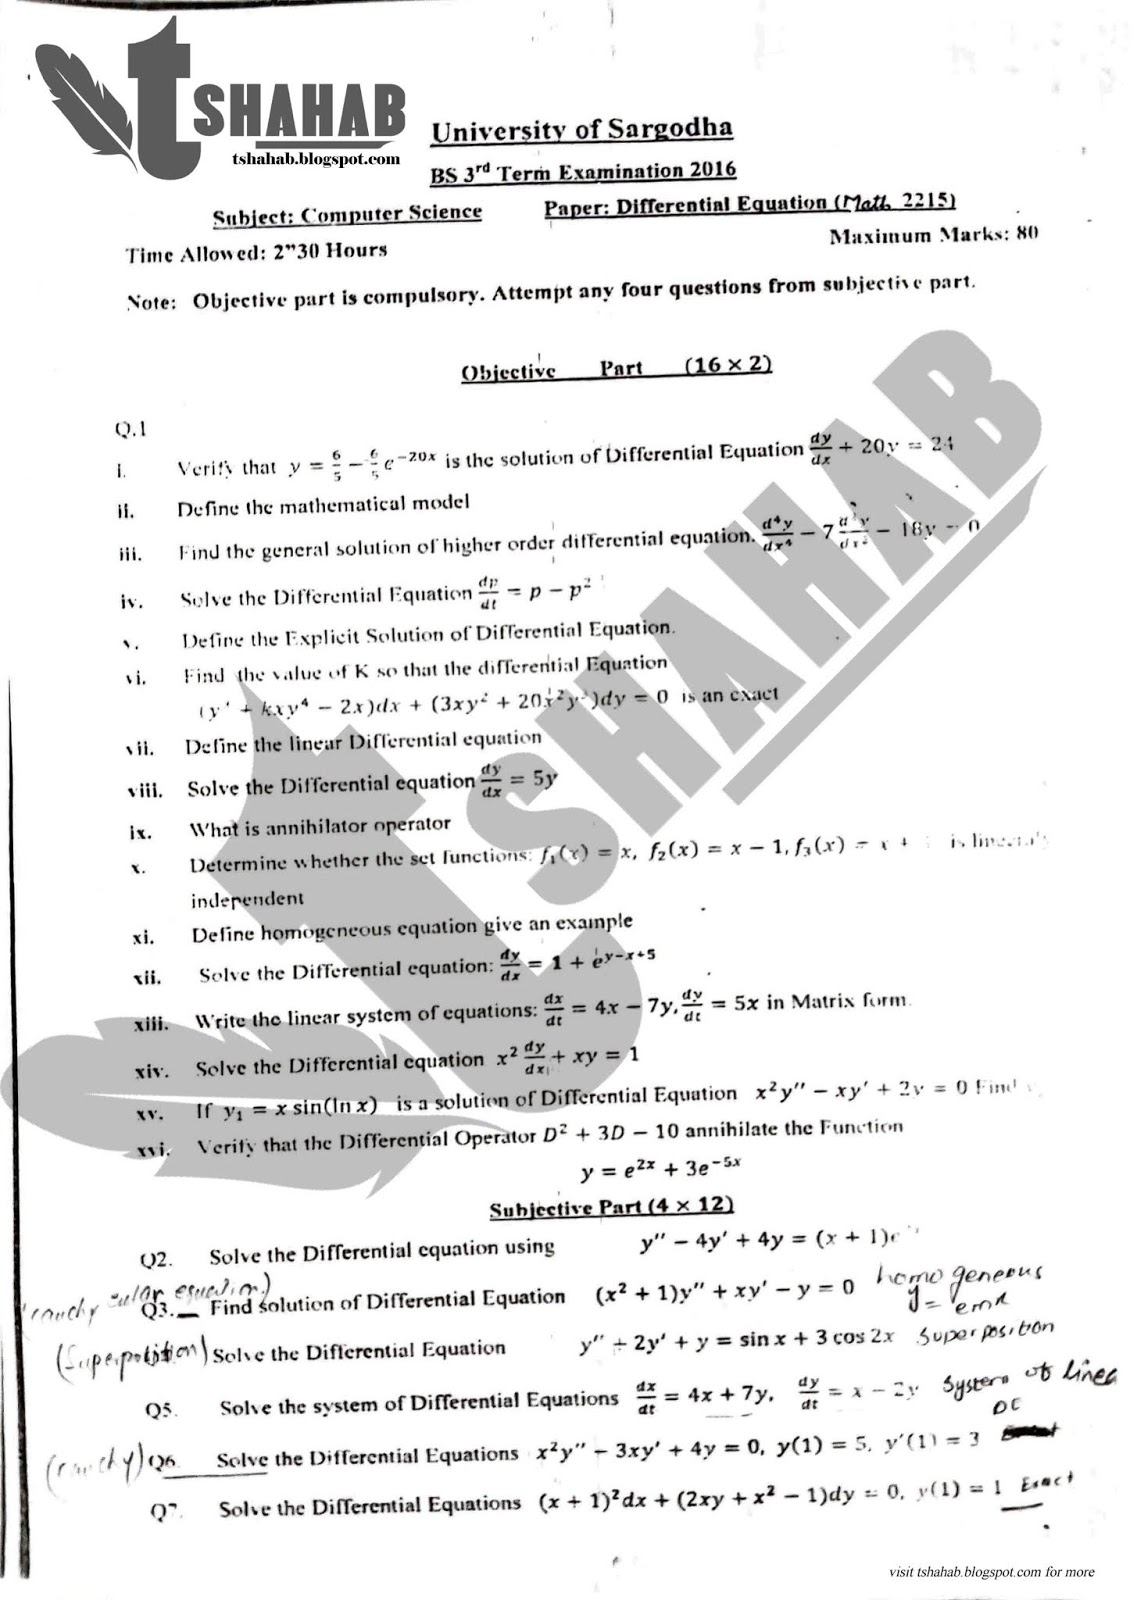 Differential Equations Past Papers & Solutions